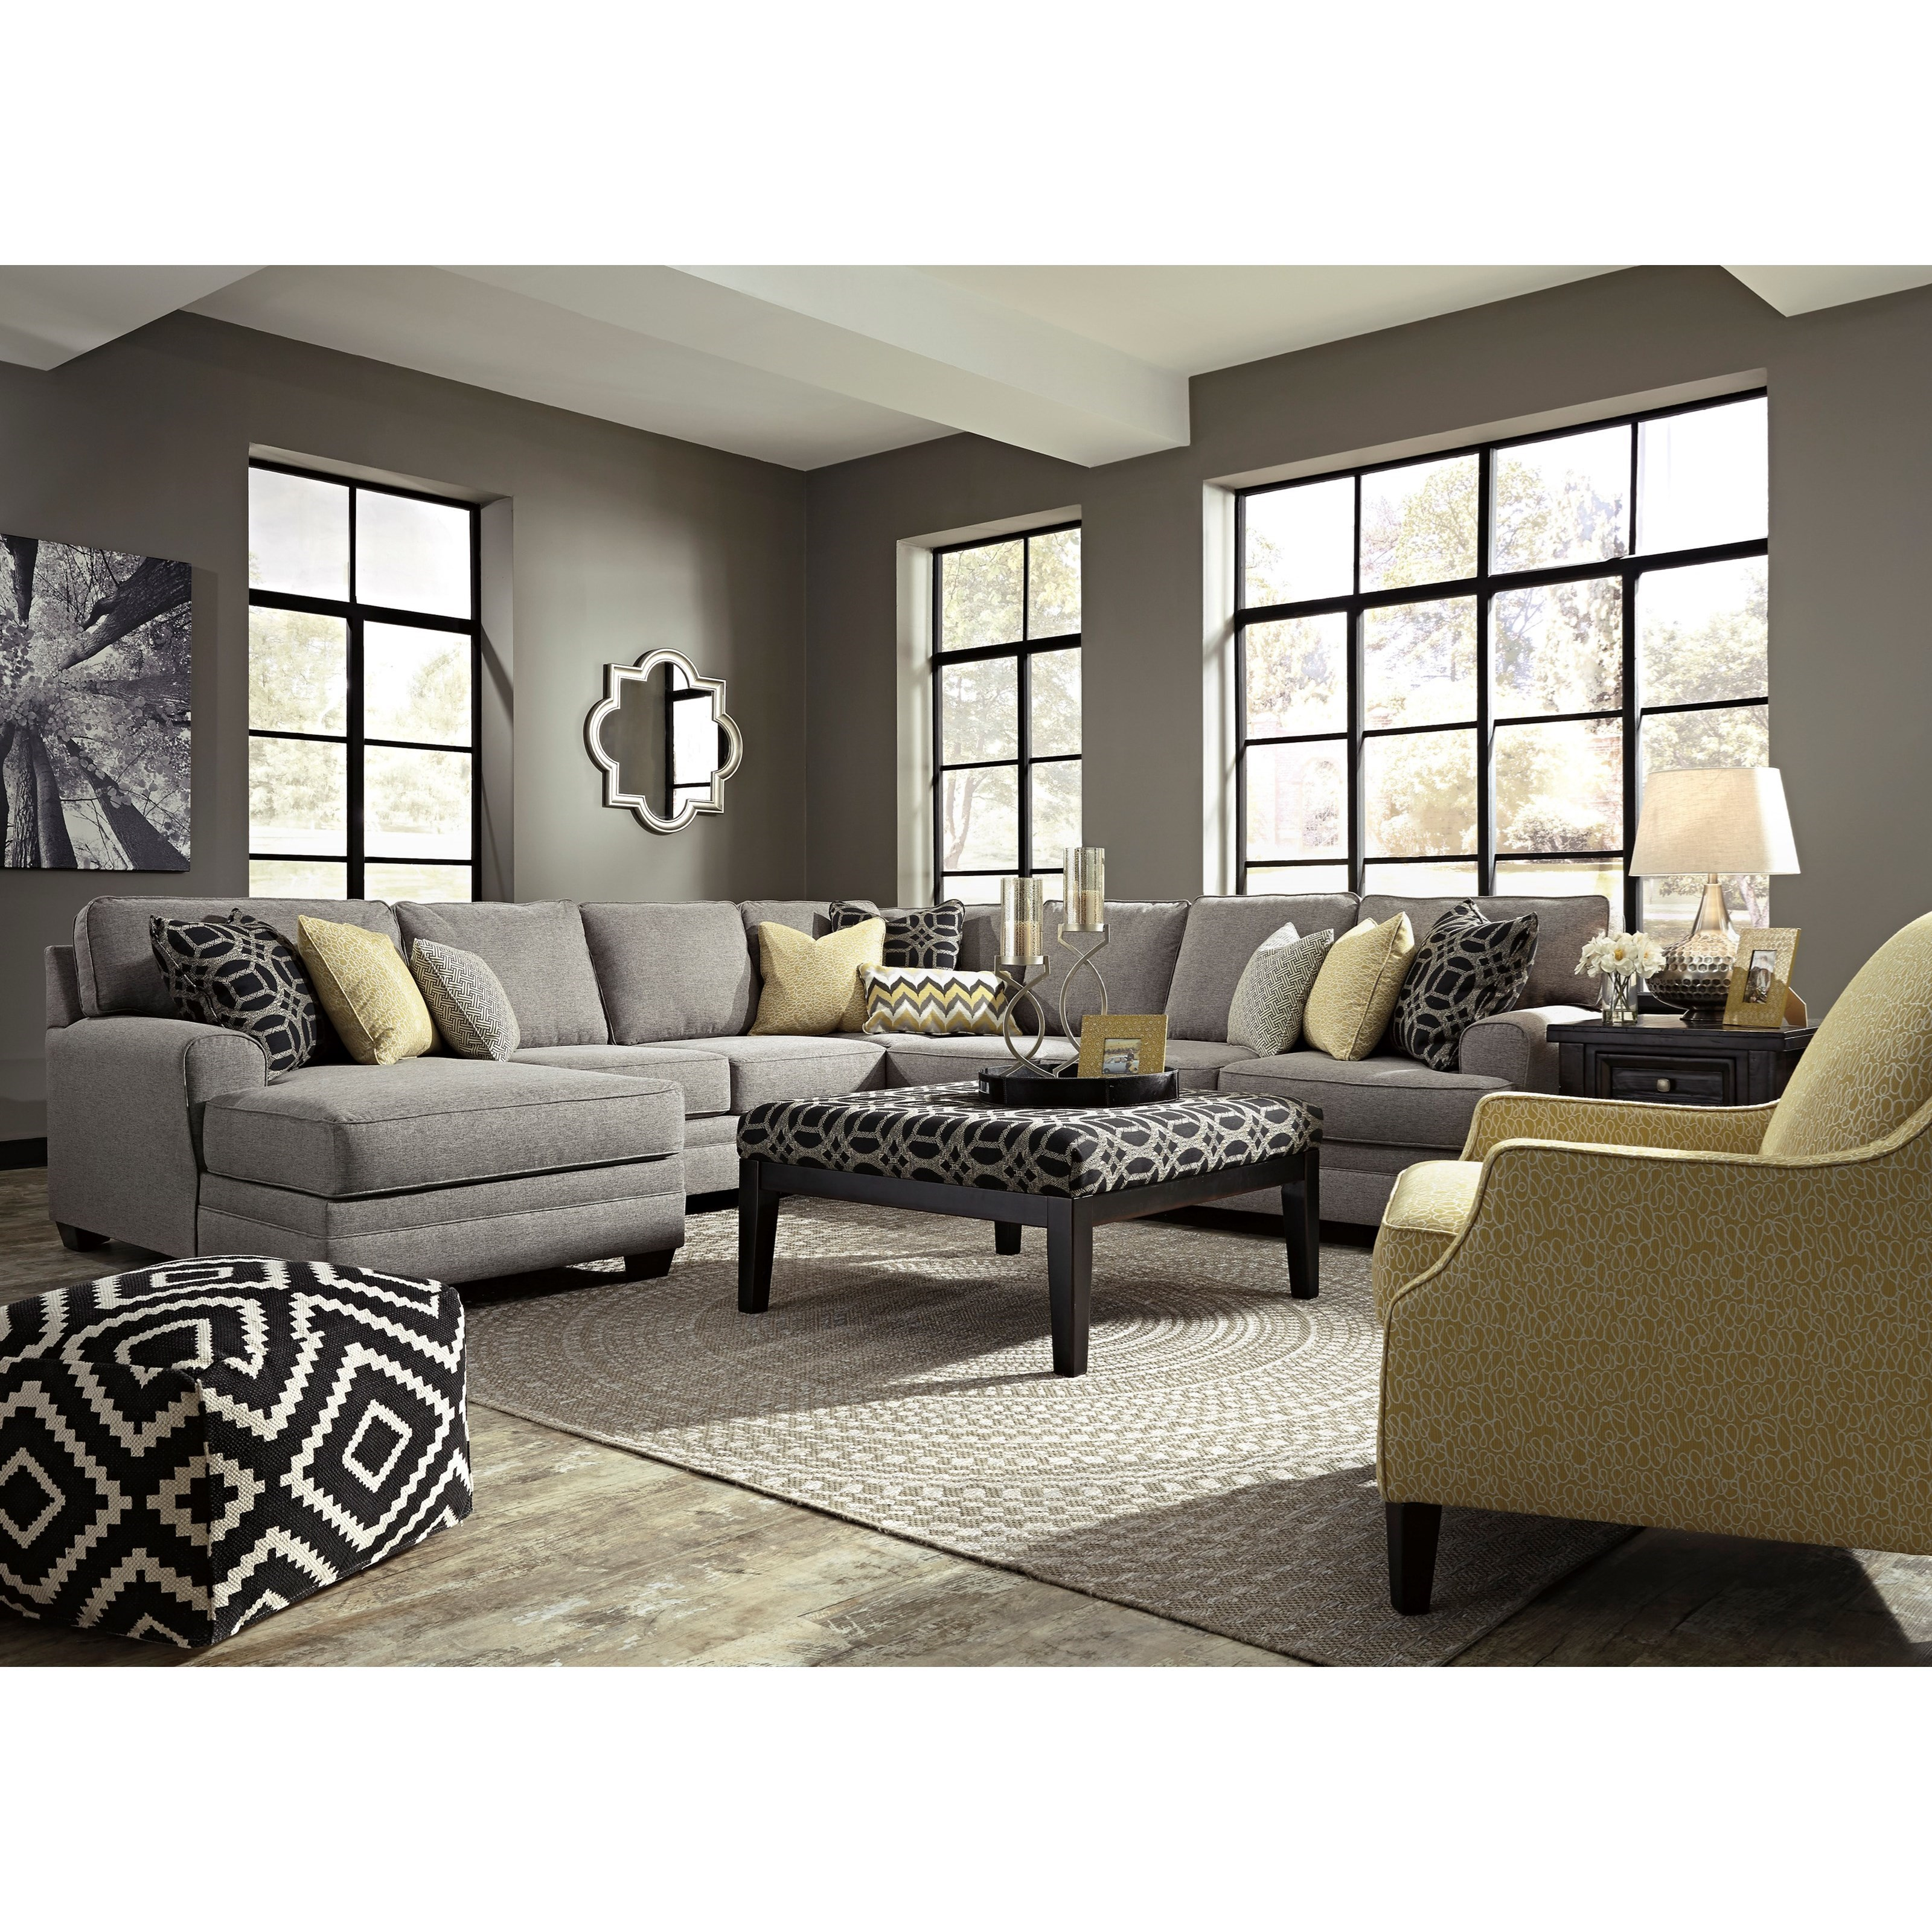 Benchcraft Cresson Contemporary 5 Piece Sectional With Chaise Dunk Bright Furniture